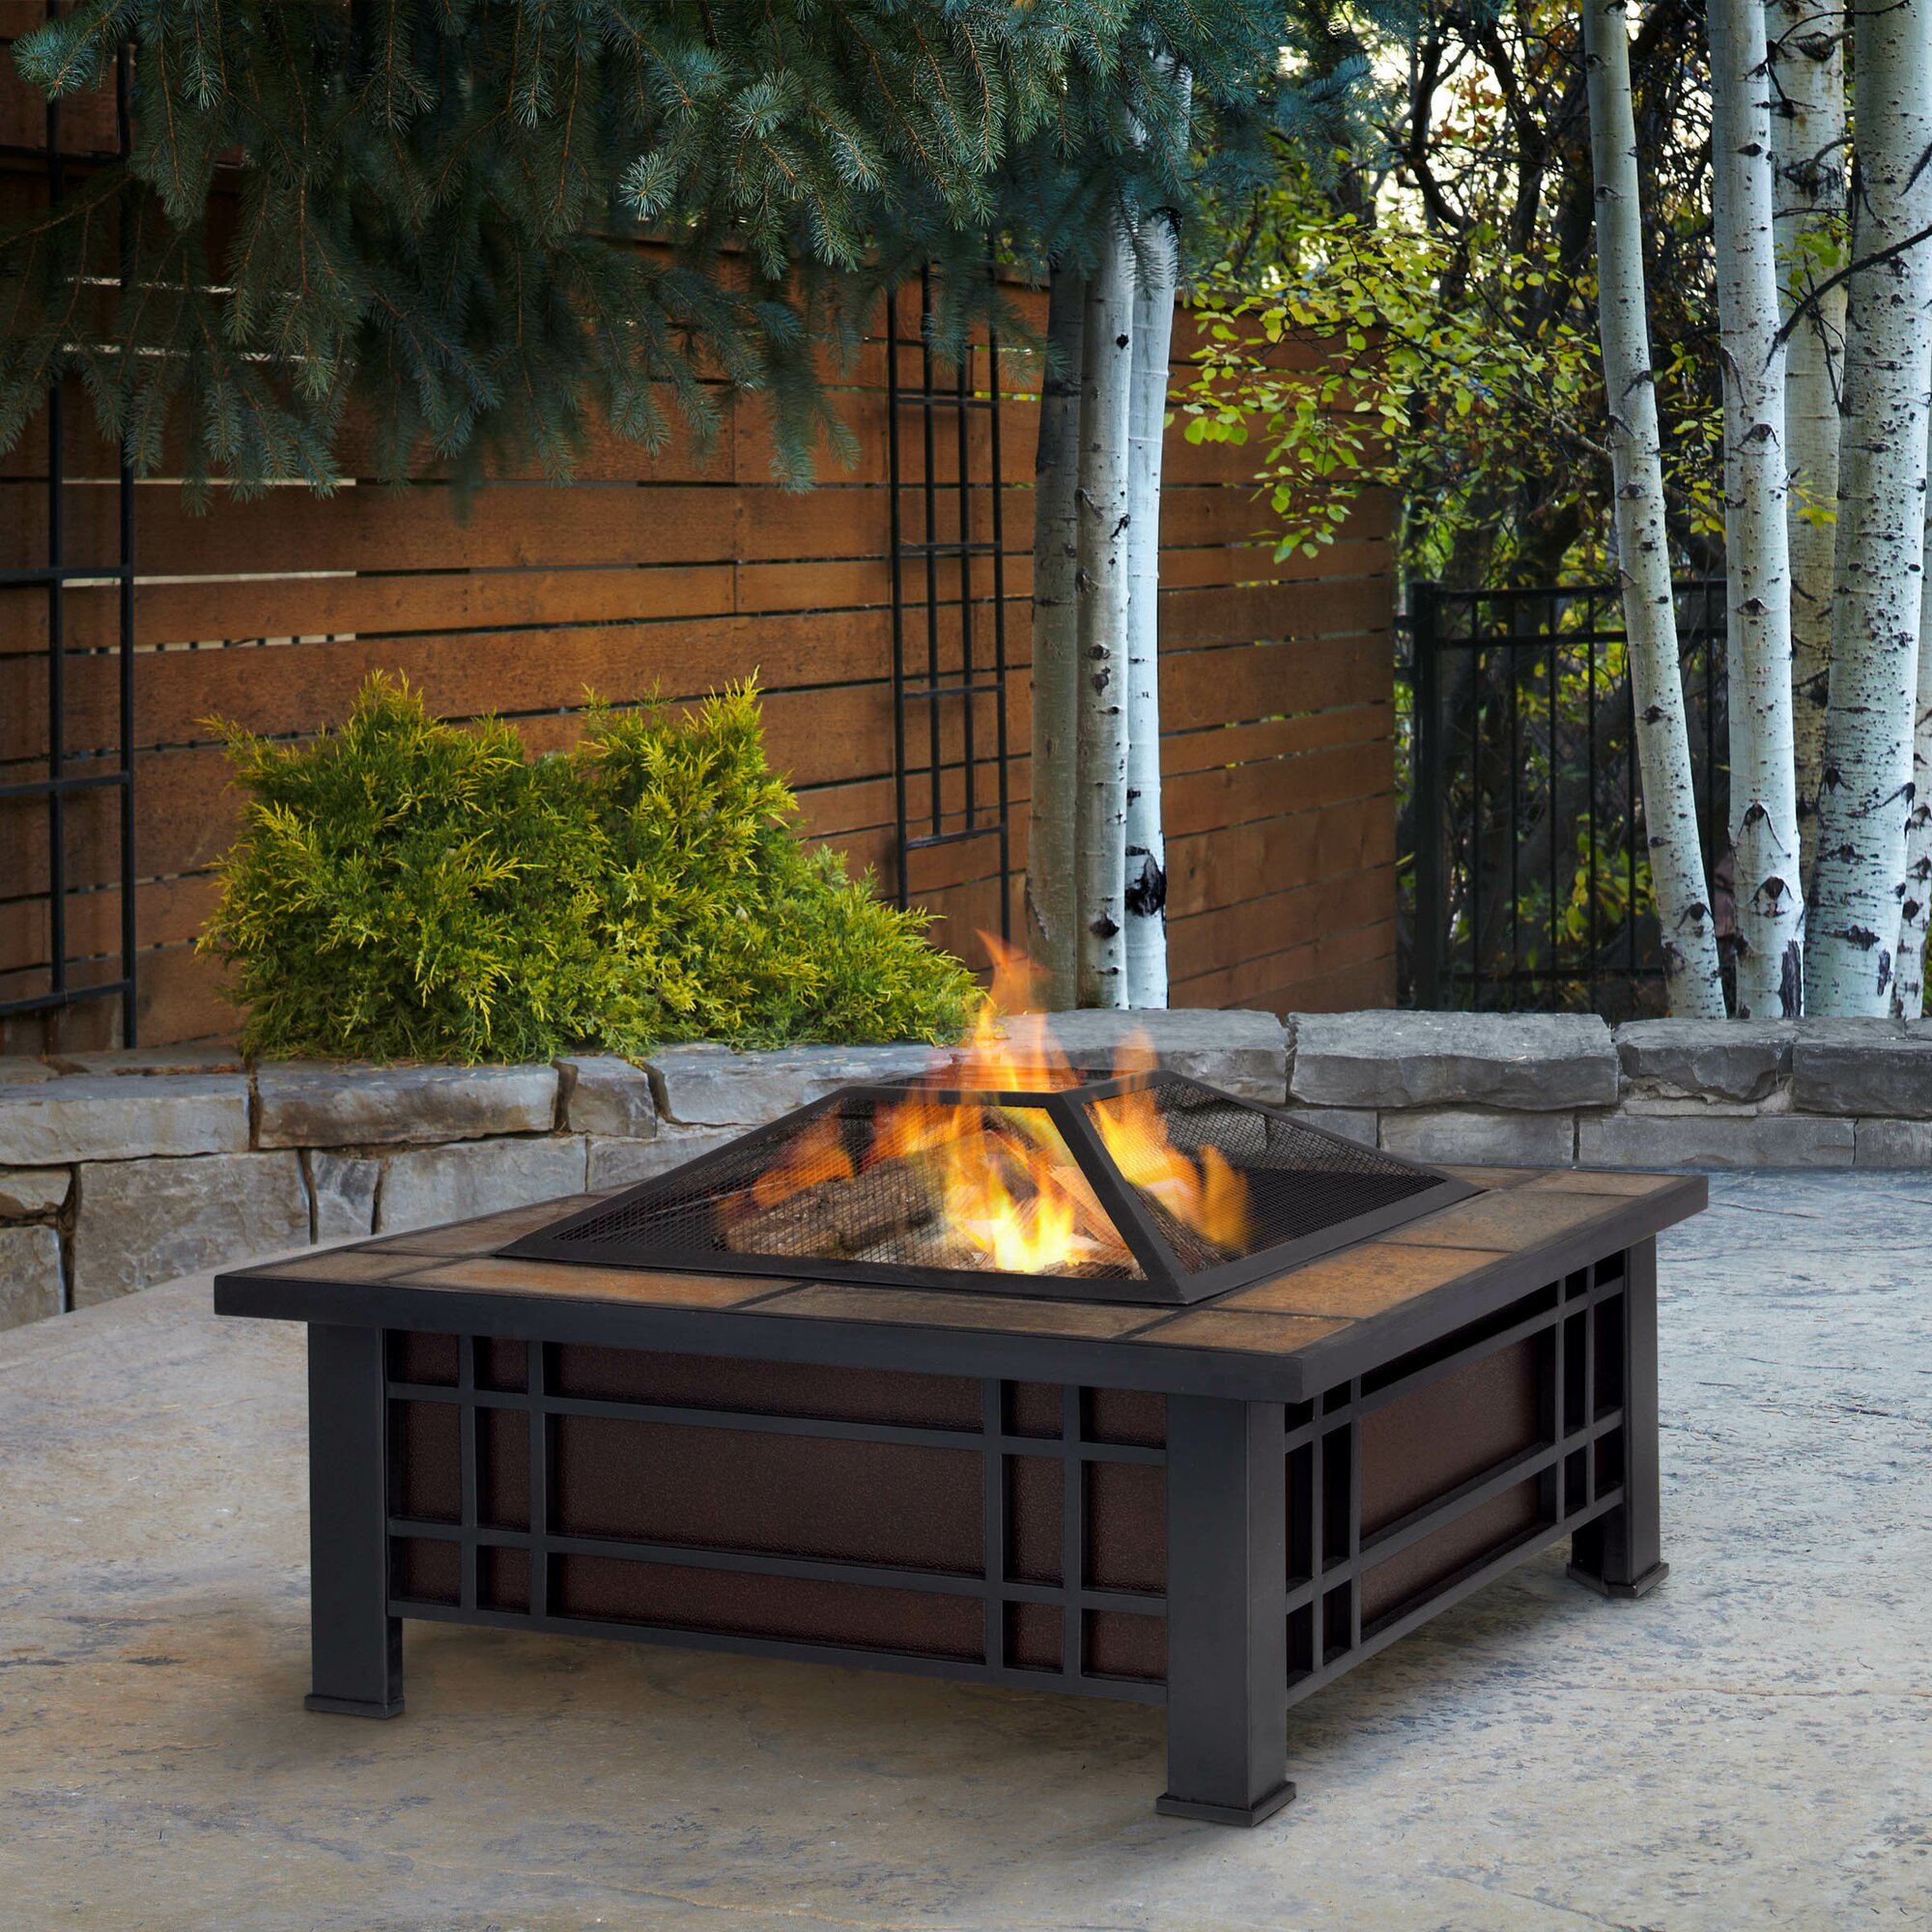 Propane fire pit on wood deck - Morrison Wood Burning Fire Pit Table